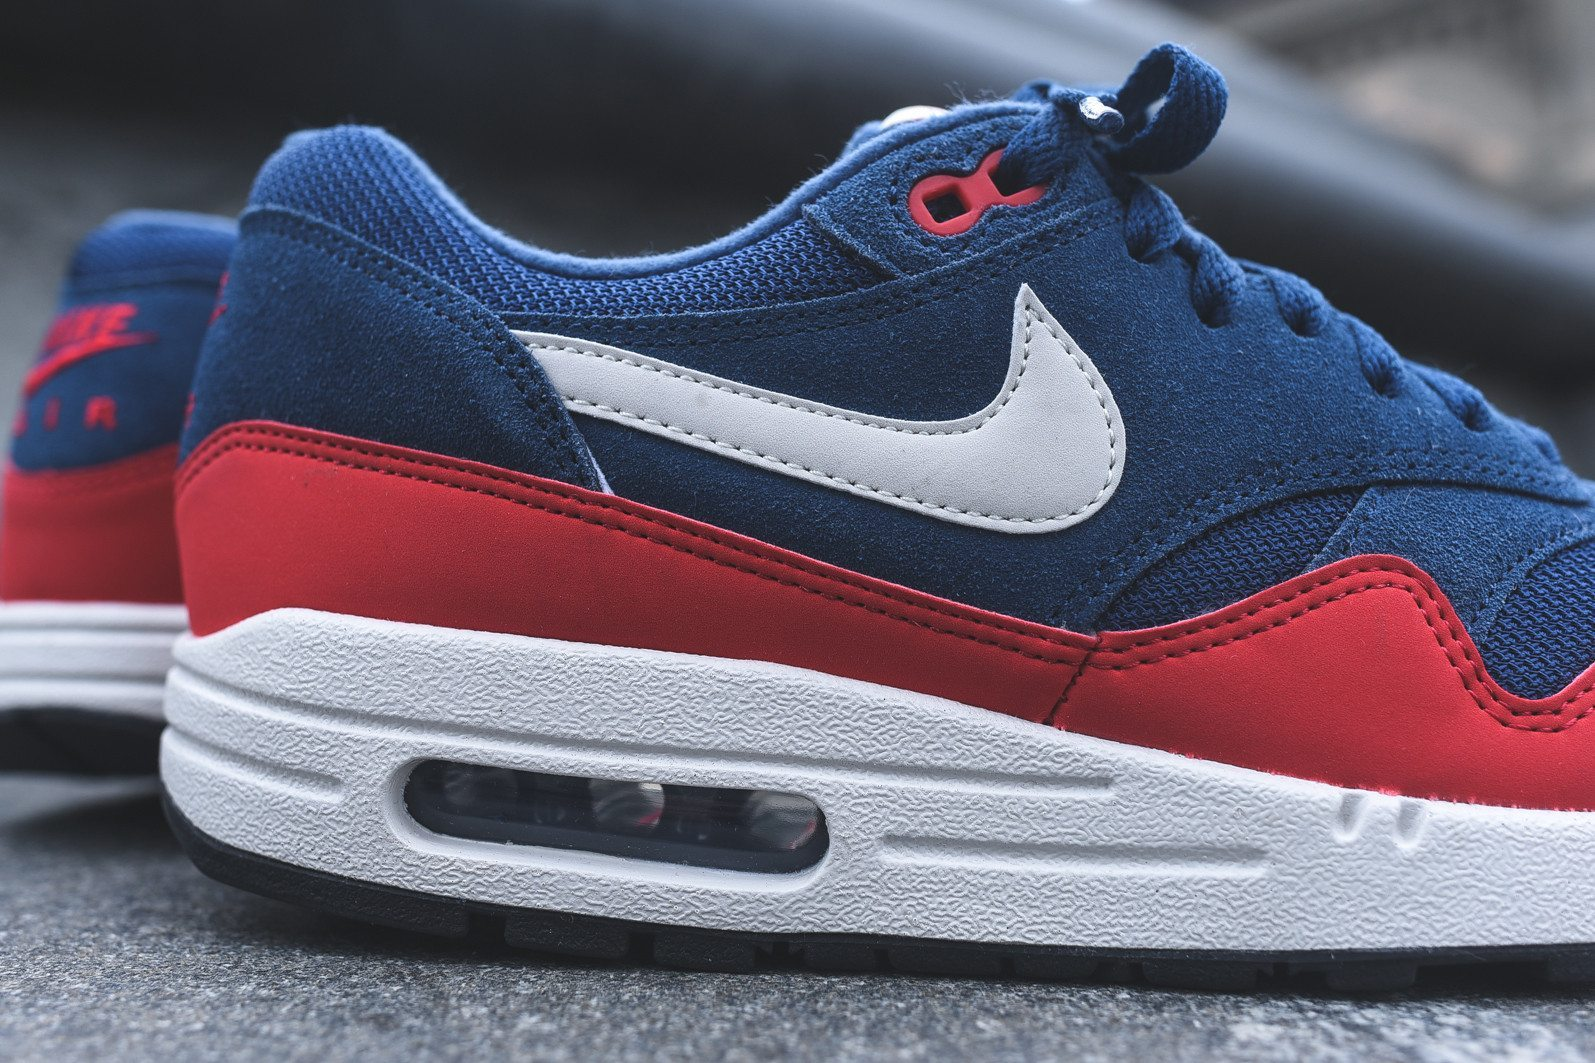 Max 1 Navy Shipping Off57Buy Nike Blue Air Redgt;free LSqMzpUVG